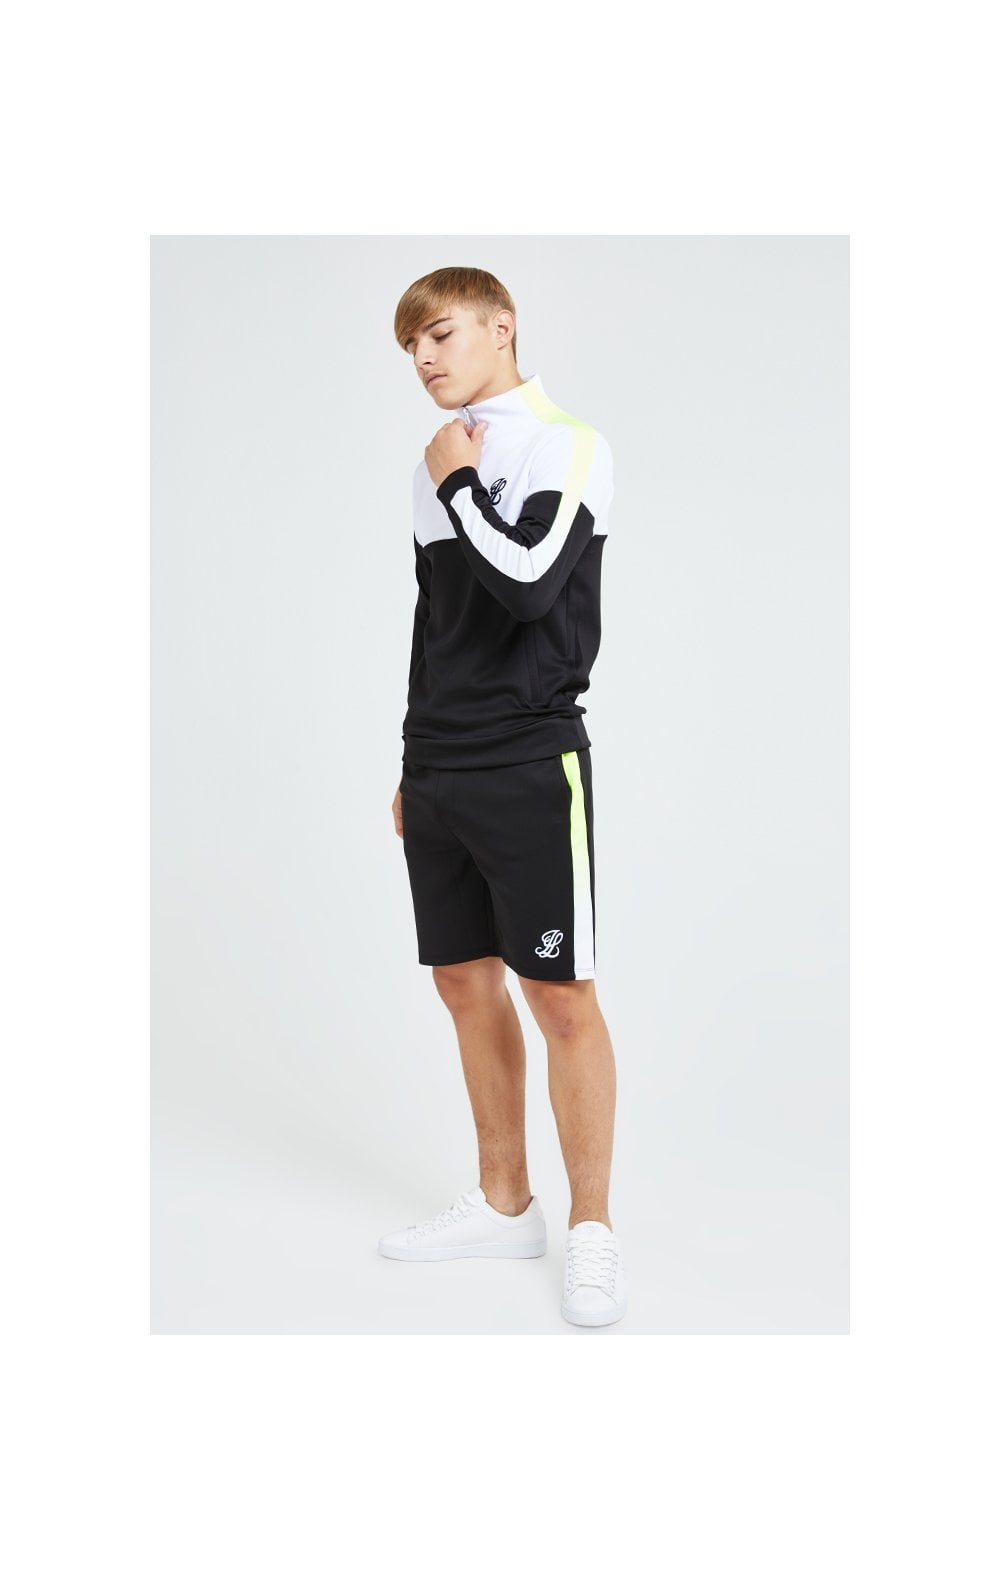 Illusive London Fade Funnel Neck Hoodie - Black,White & Neon Yellow (6)